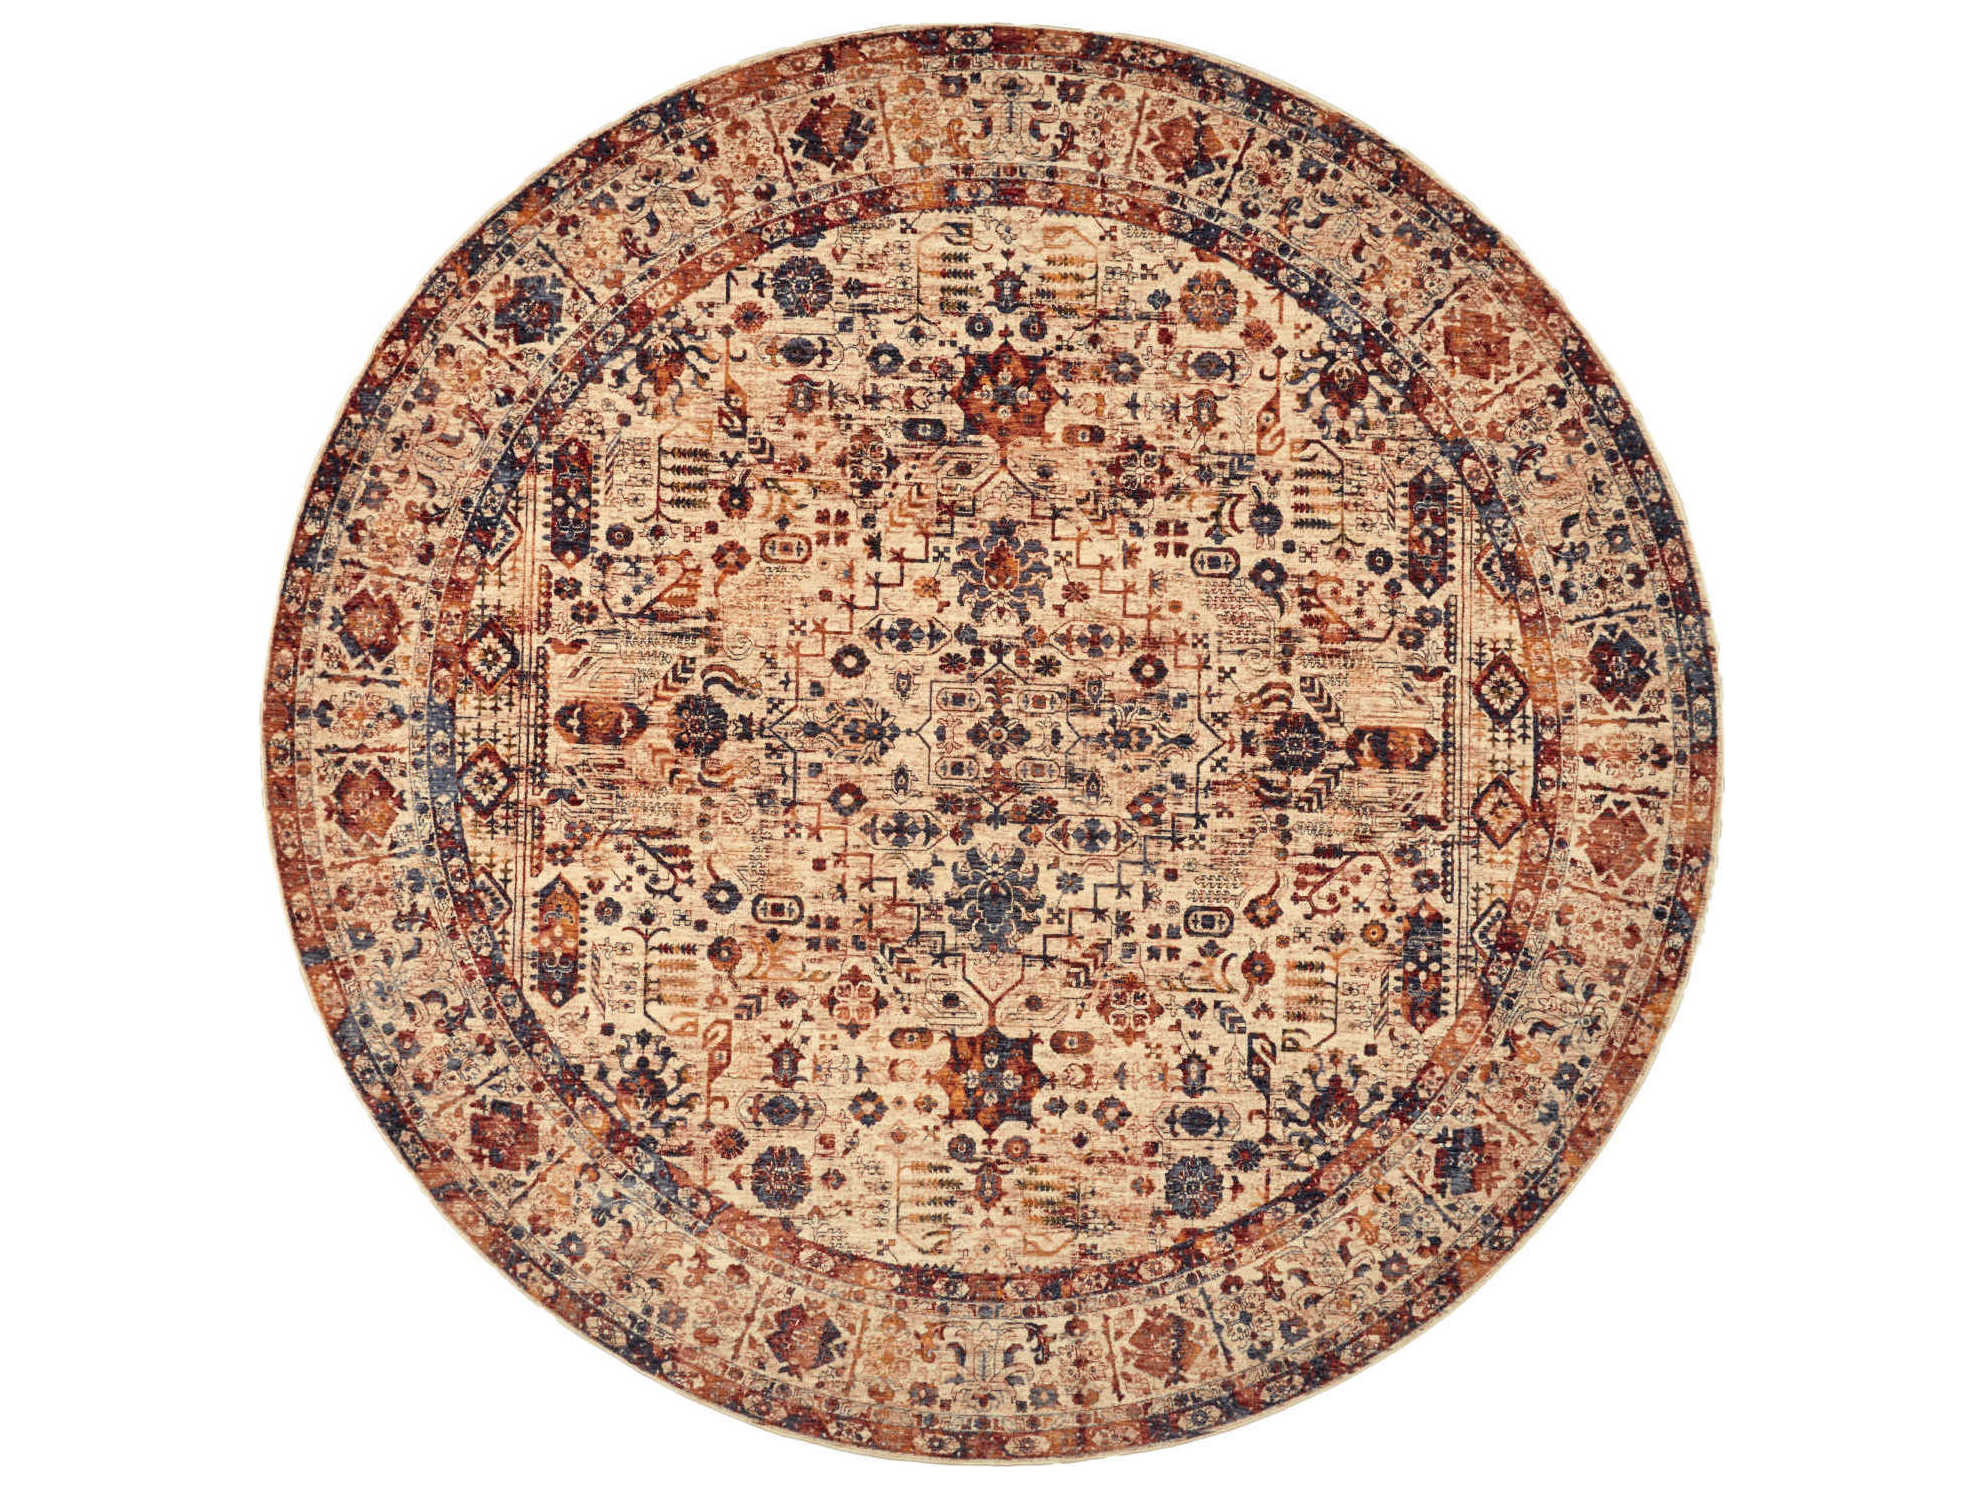 Feizy Rugs Hammond Taupe Blue Round Area Rug